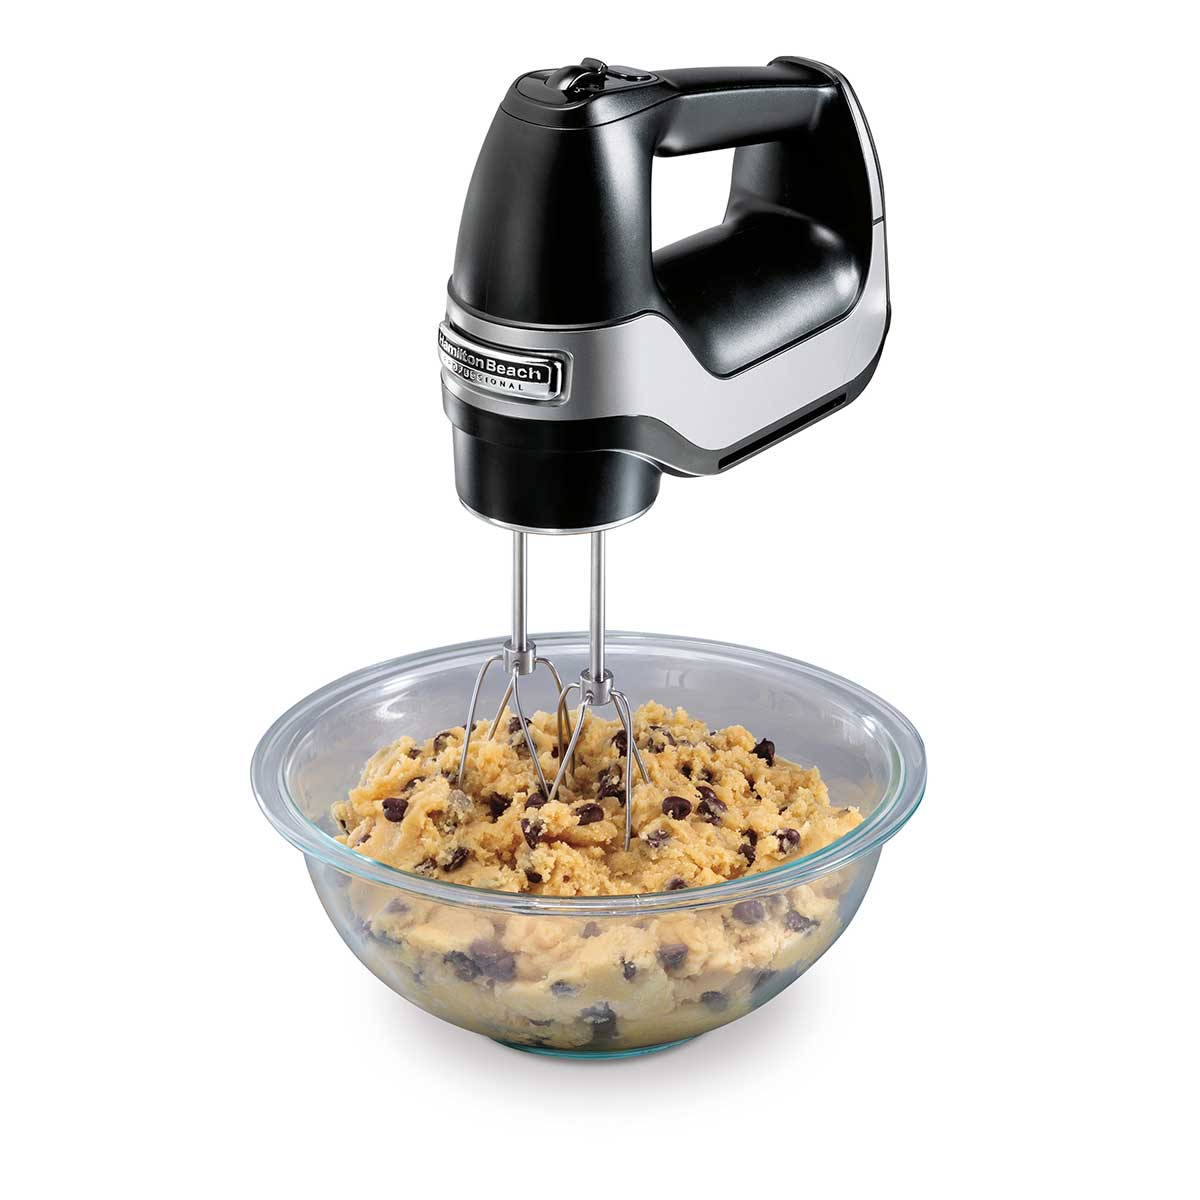 Hamilton Beach® Professional Hand Mixer 5 Speed, Black (62651)